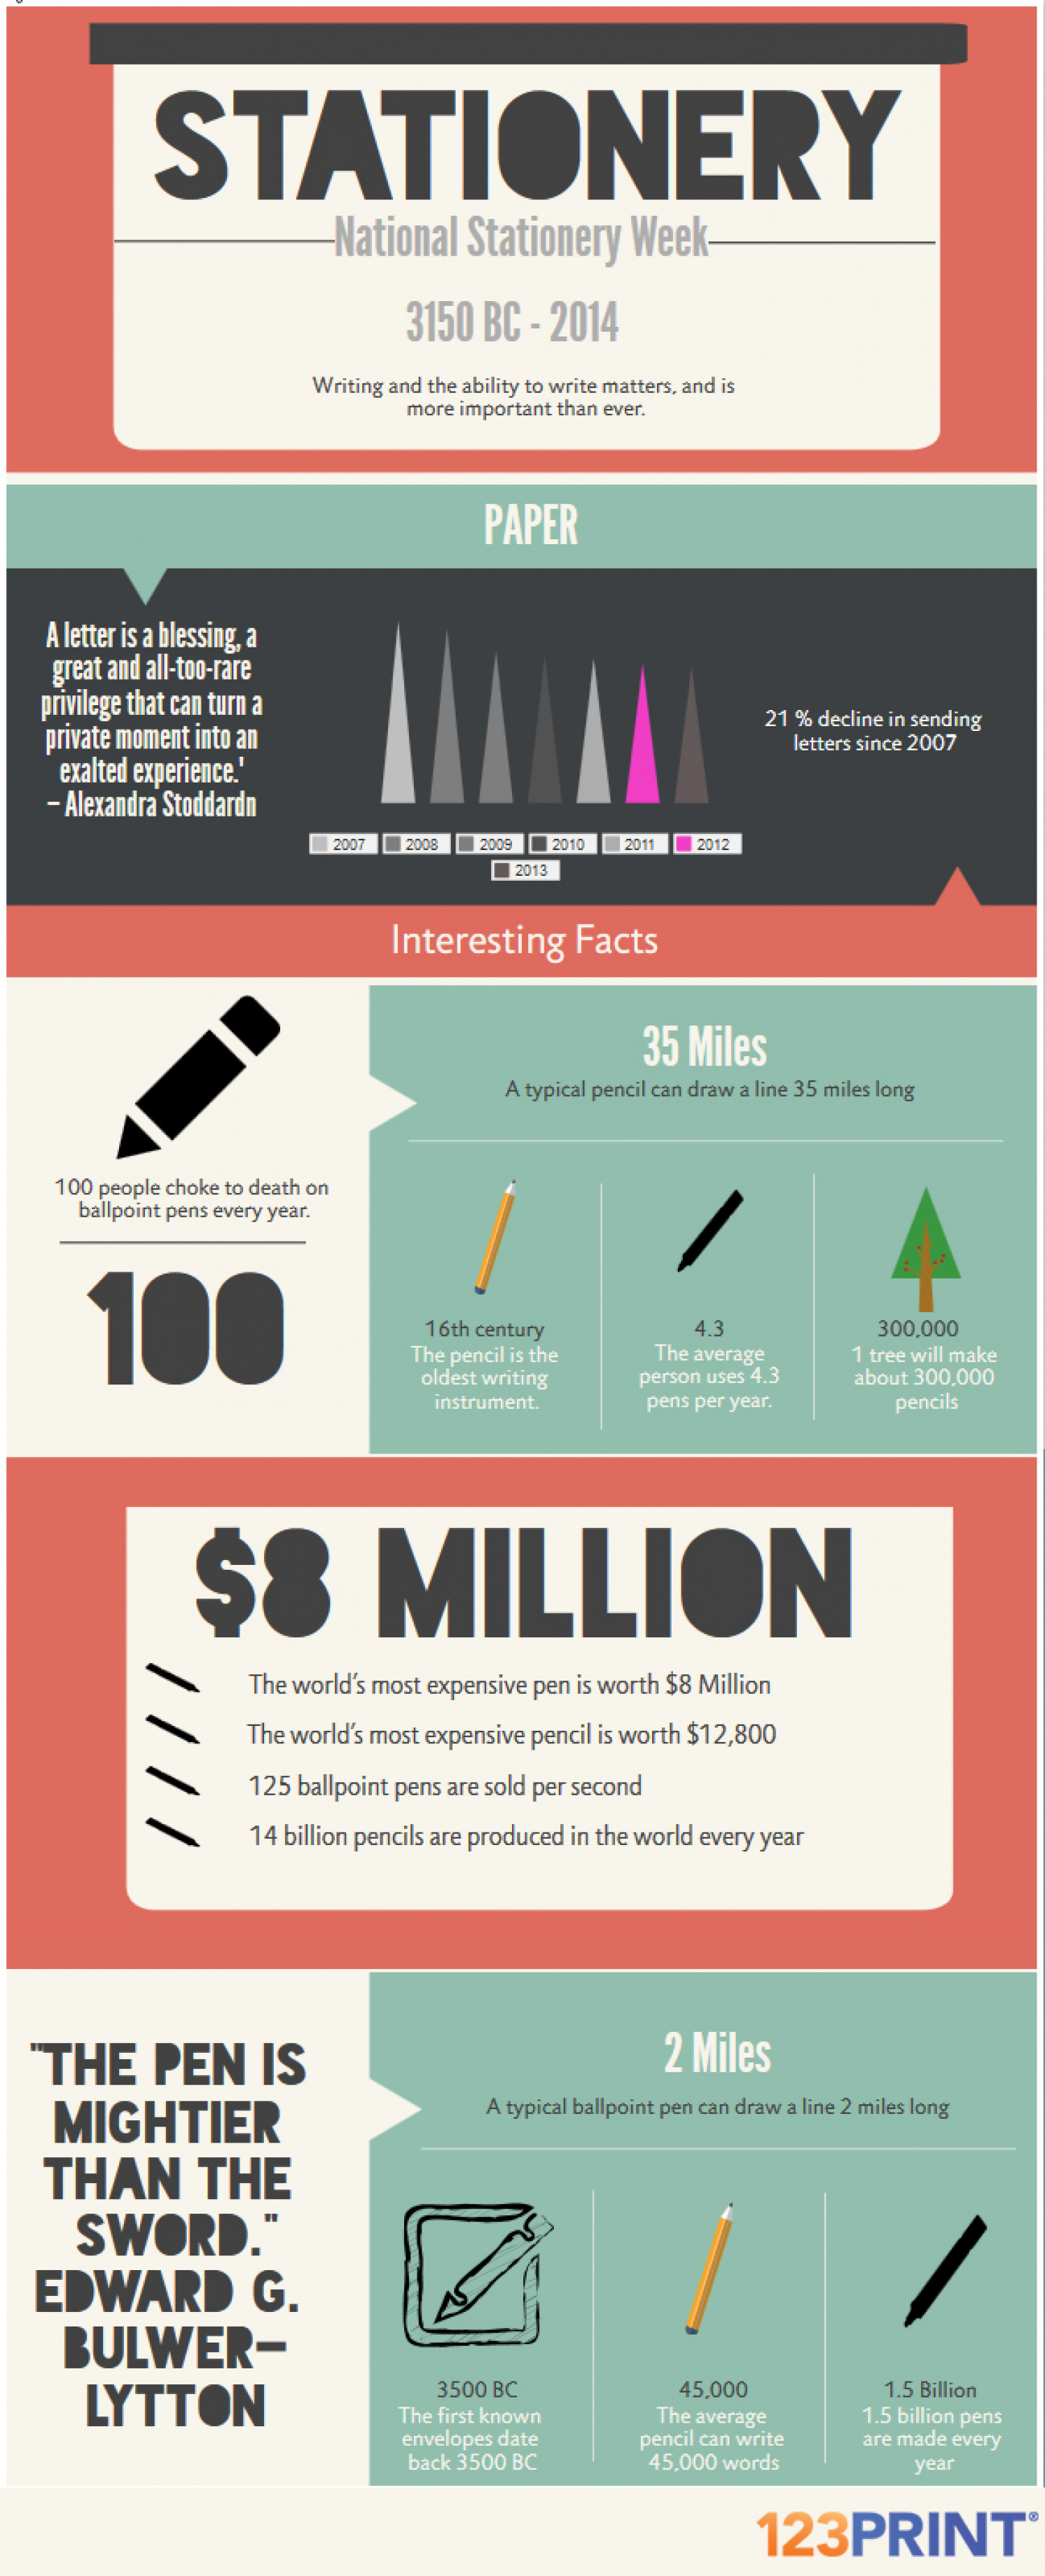 Stationery Week: A Few Facts Infographic